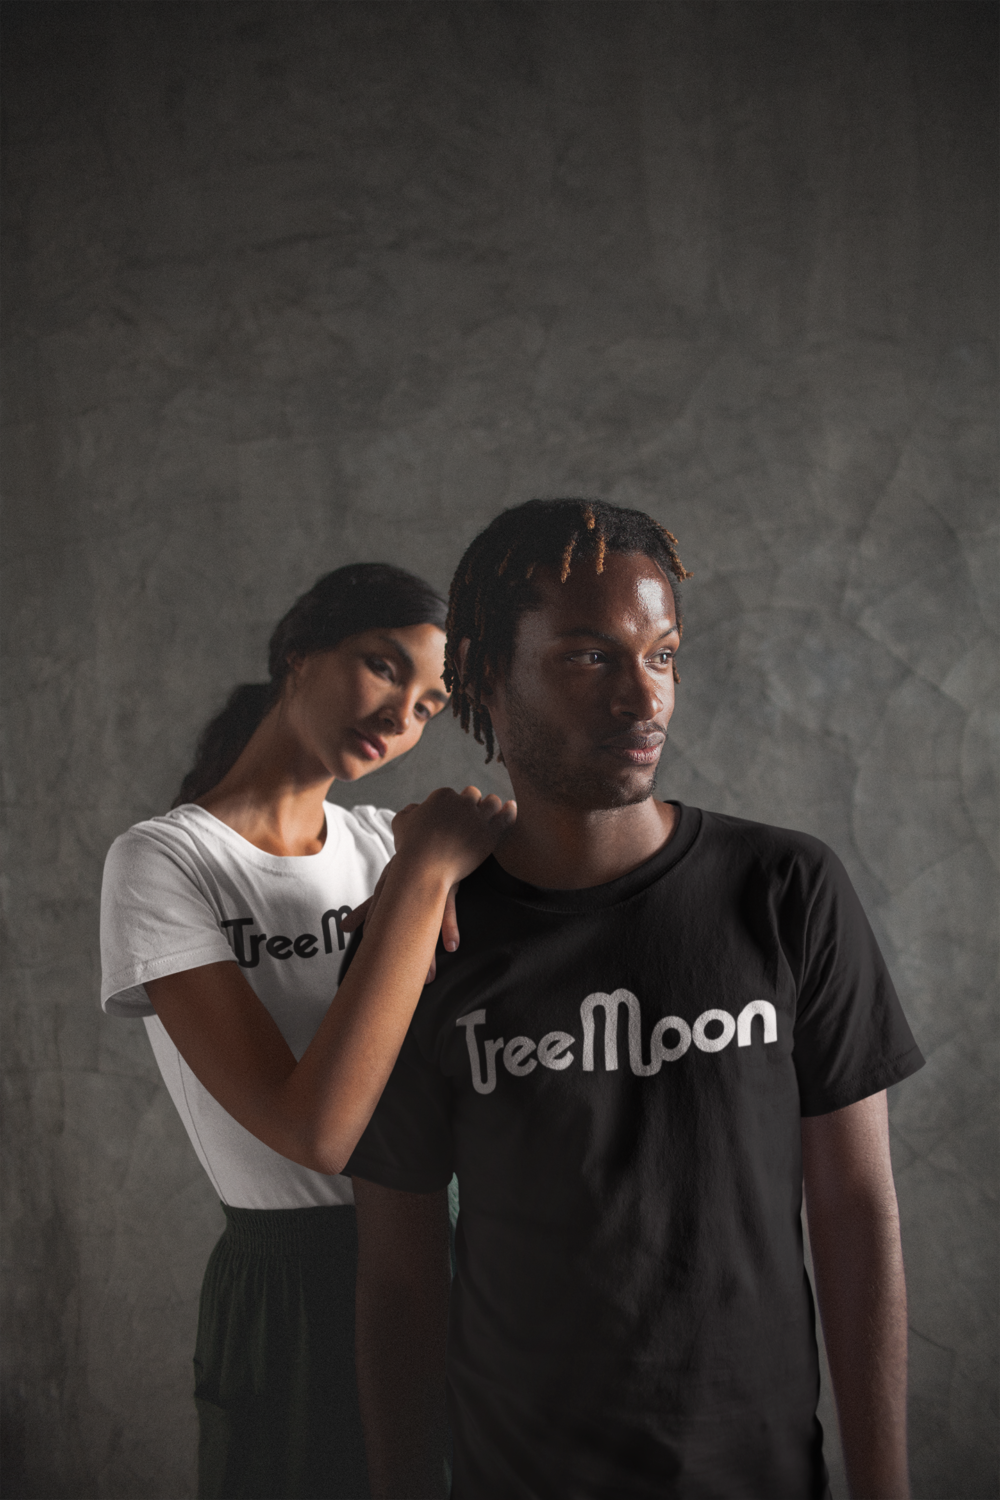 TreeMoon-models-Latina-Black-man, TreeMoon Cannabis Fashion: a Black business surviving the pandemic, Culture Currents